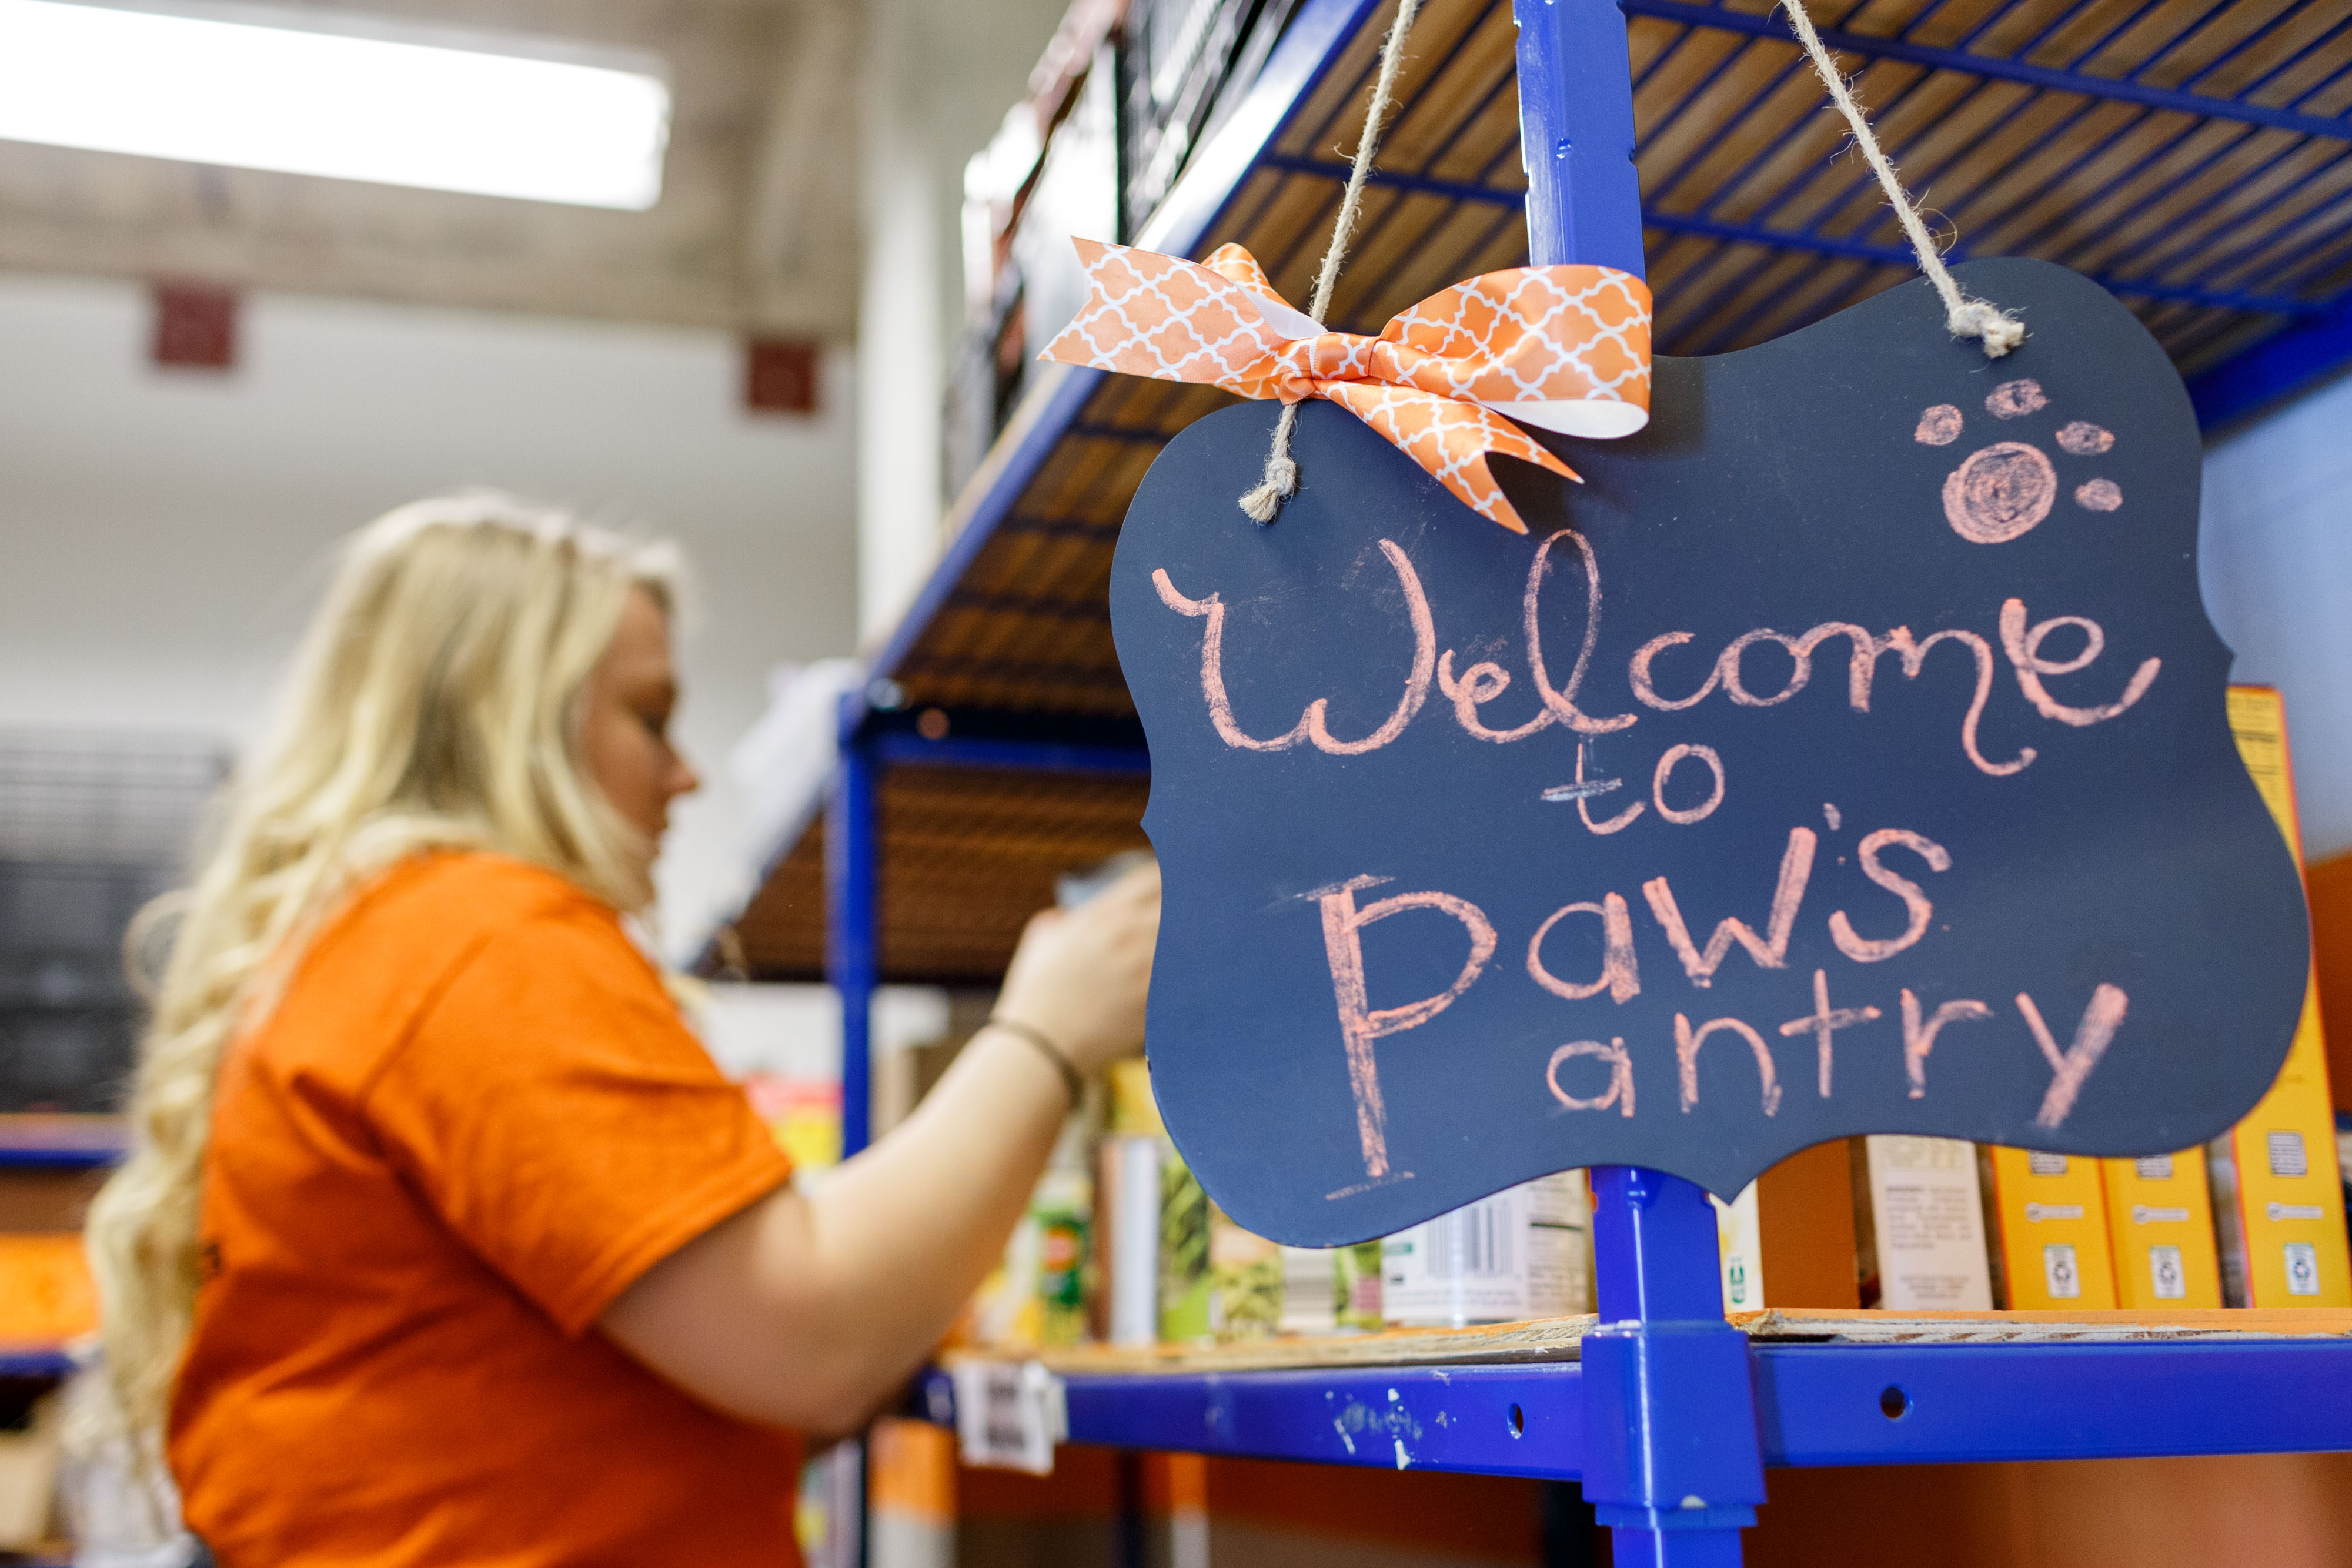 Women stocks shelves with canned goods, sign in the foreground says Welcome to Paw's Pantry.